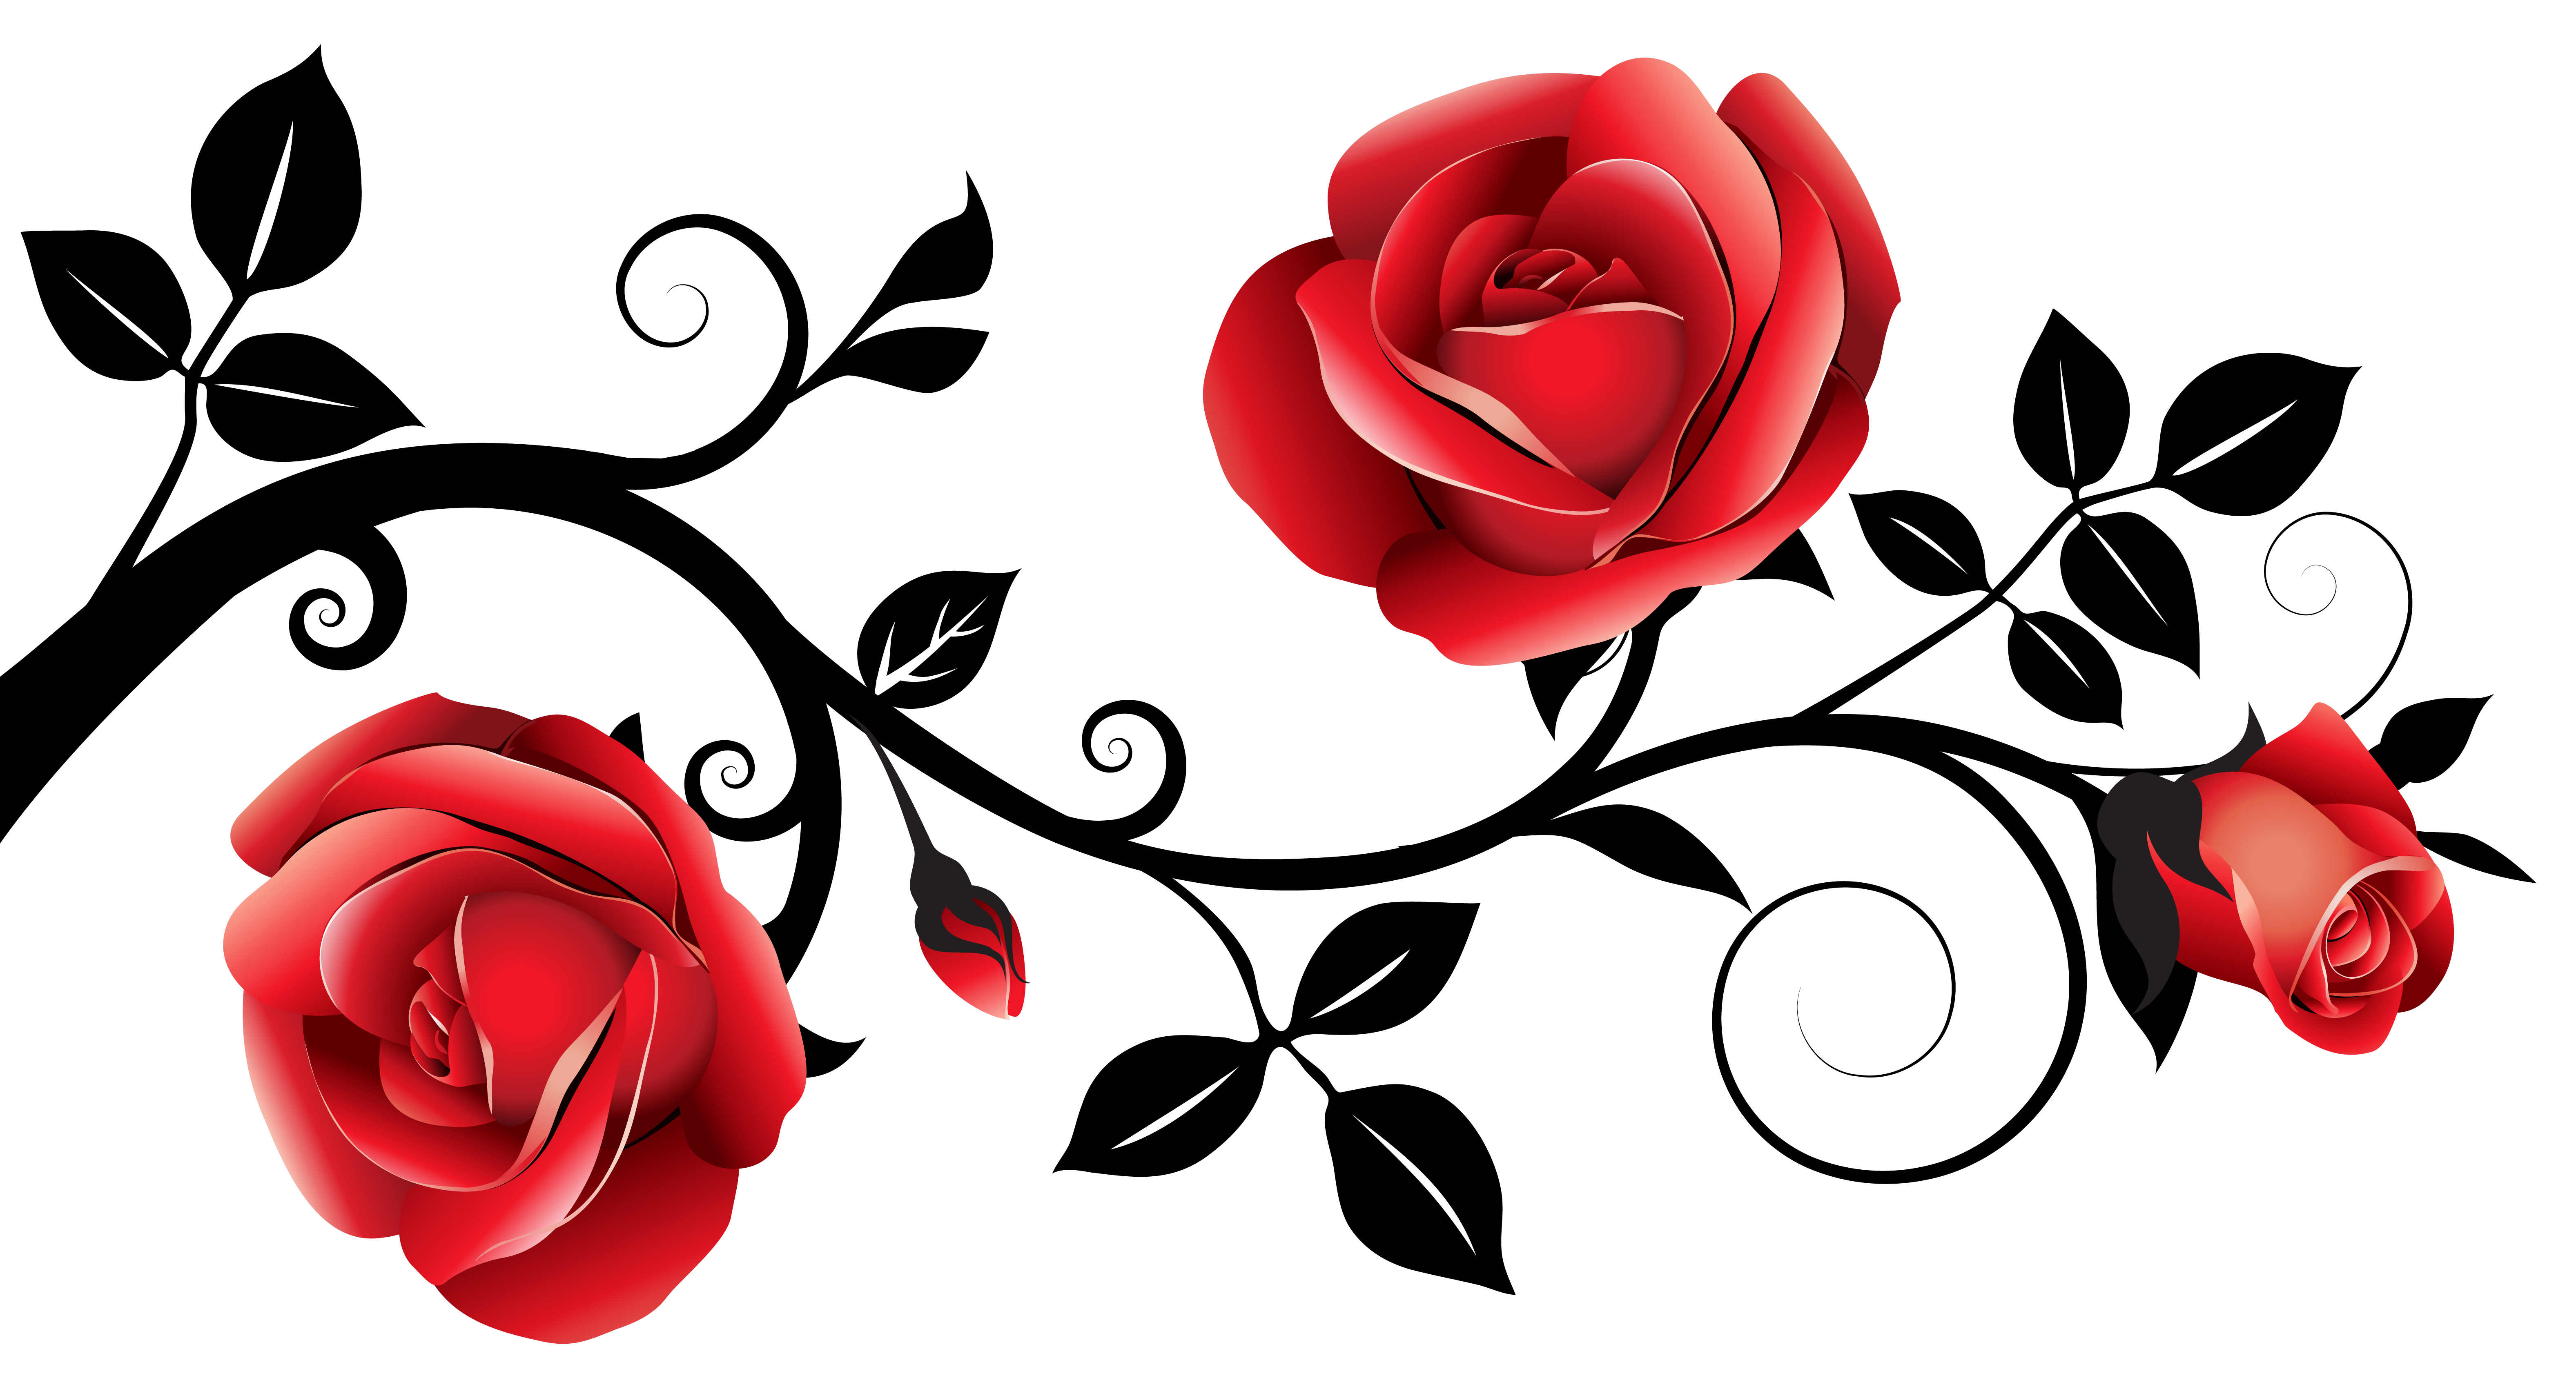 Rose thorns border png. Red and black decorative